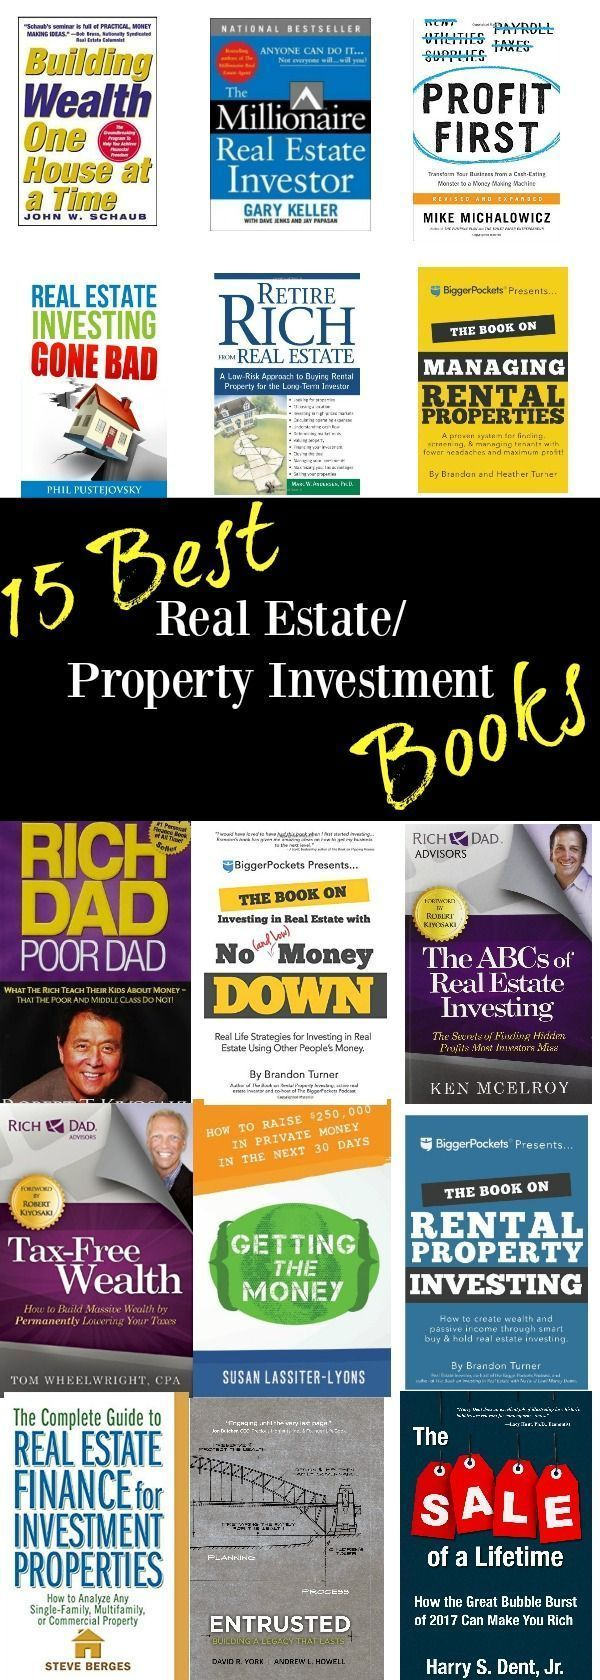 Best property investment book m&g investments hong kong